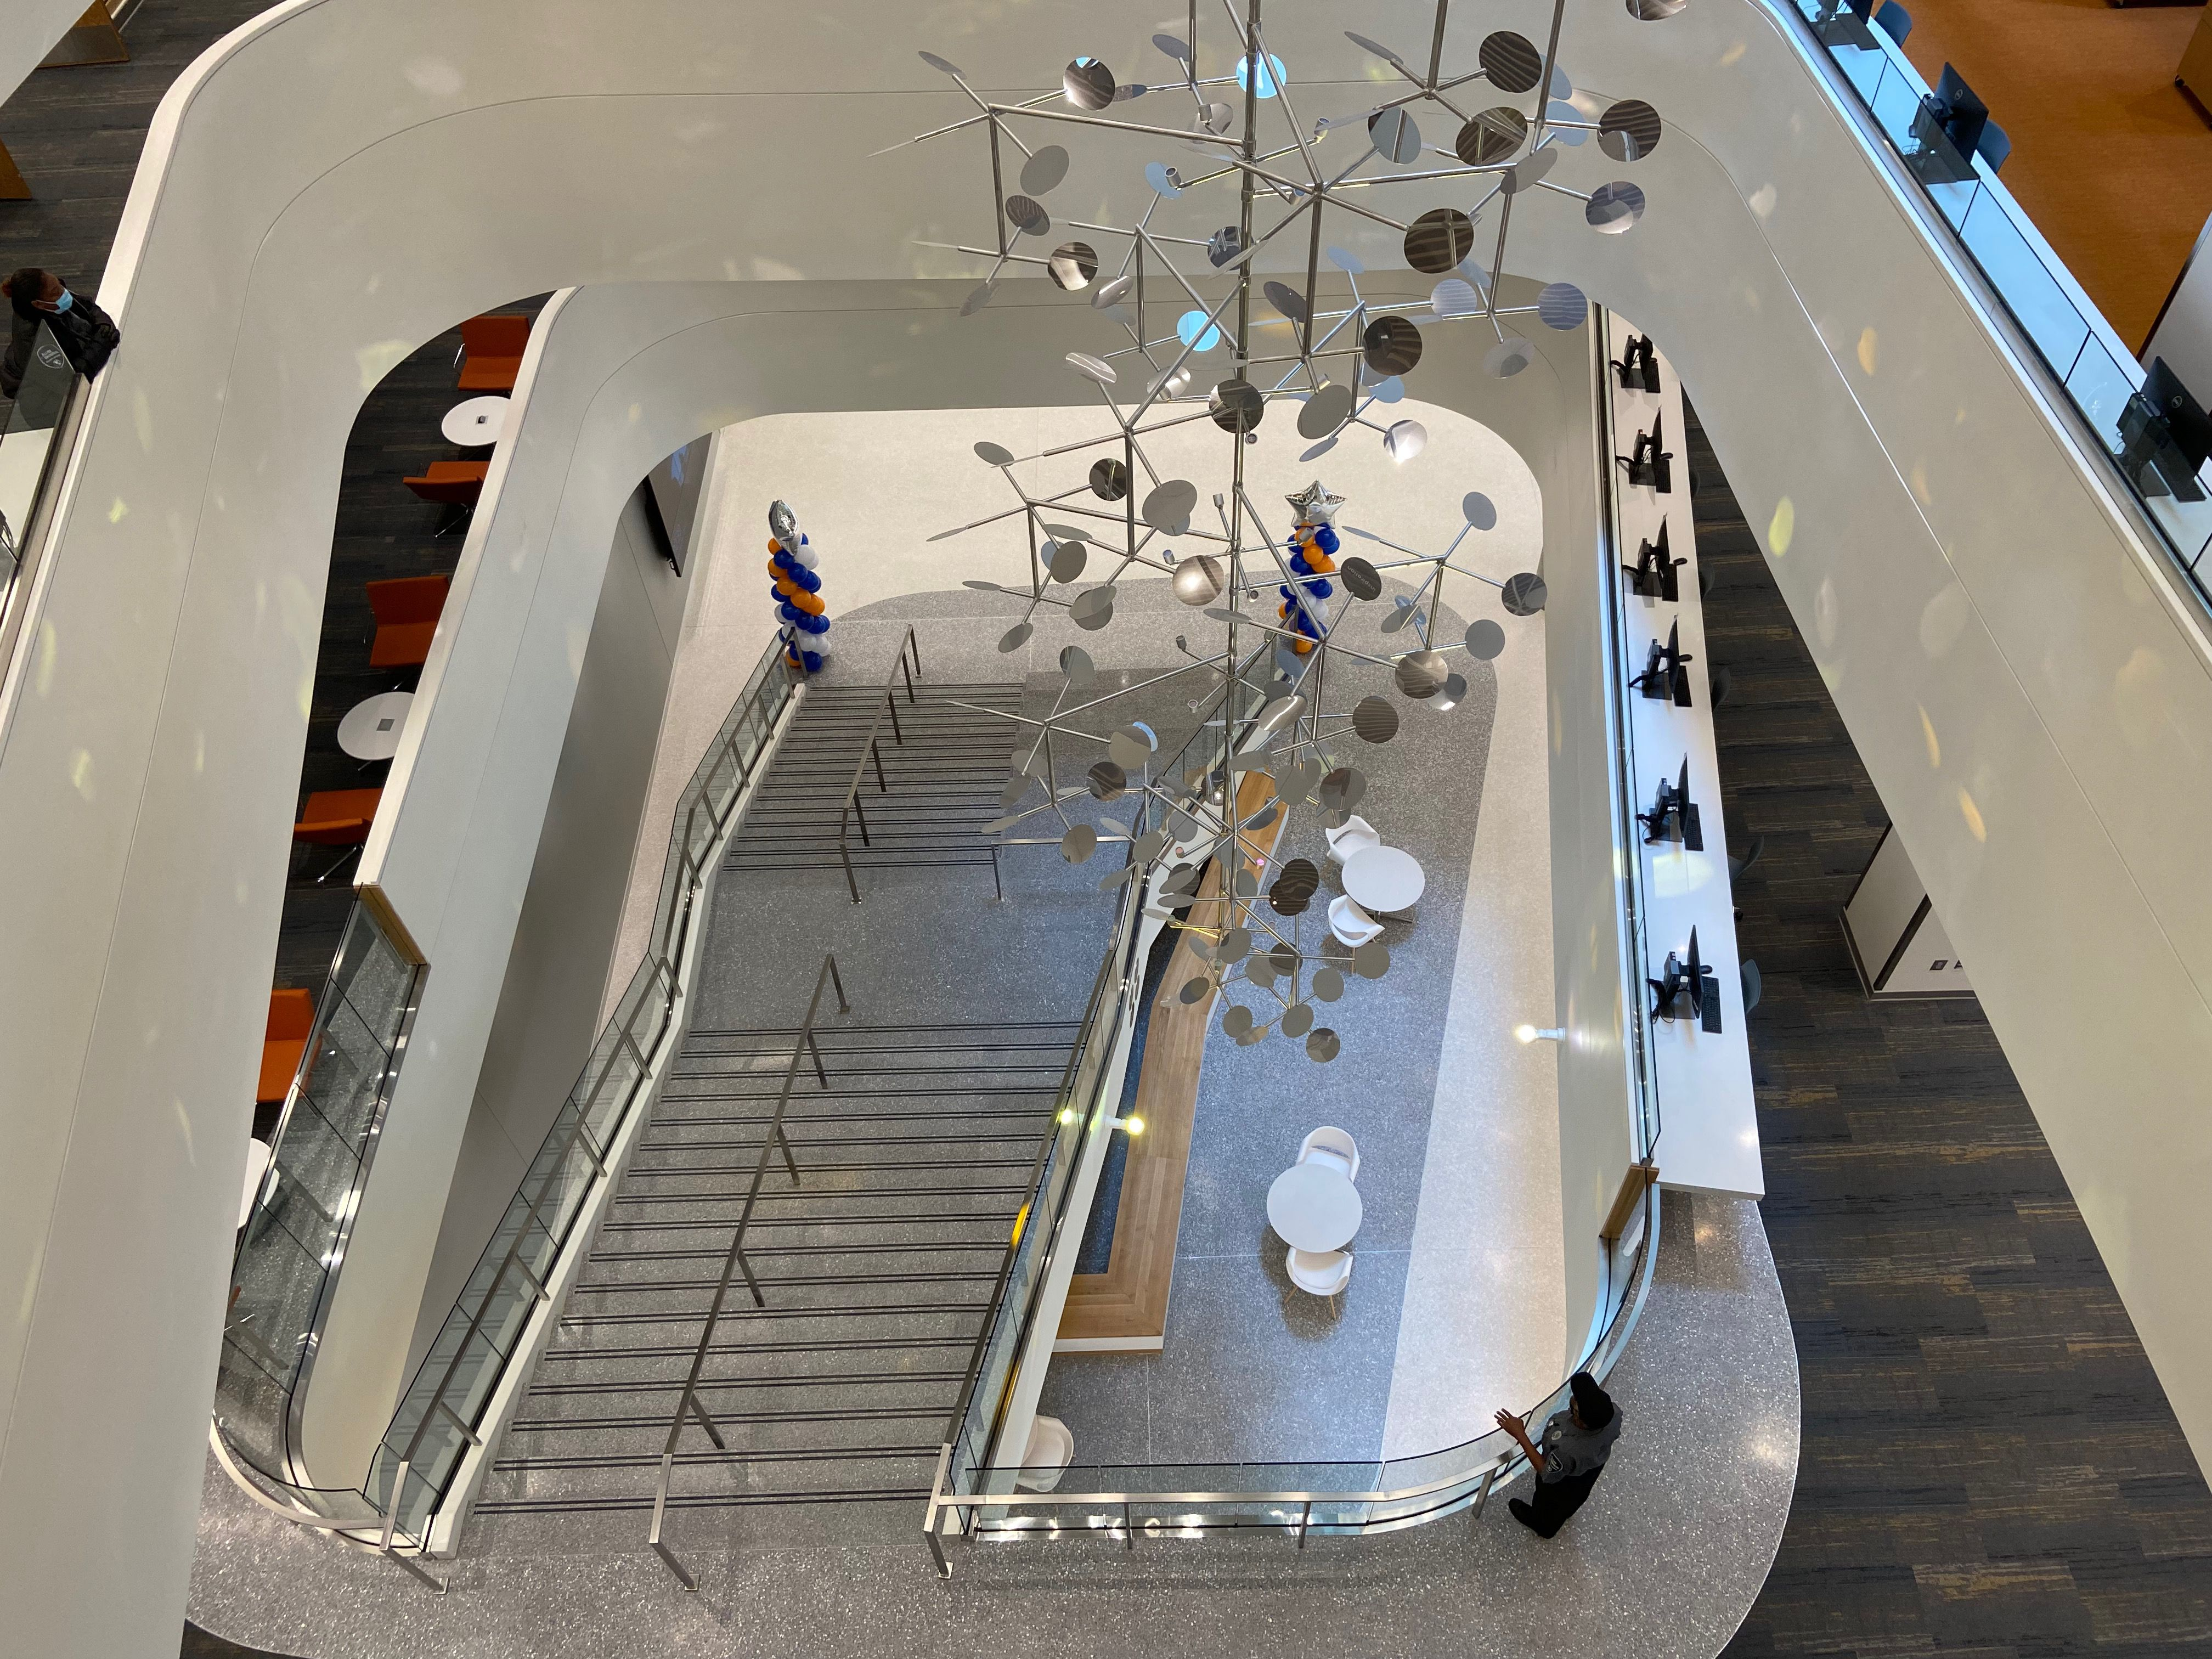 An aerial photograph overlooking the central staircase and central airway that floods the Central Library with daylight